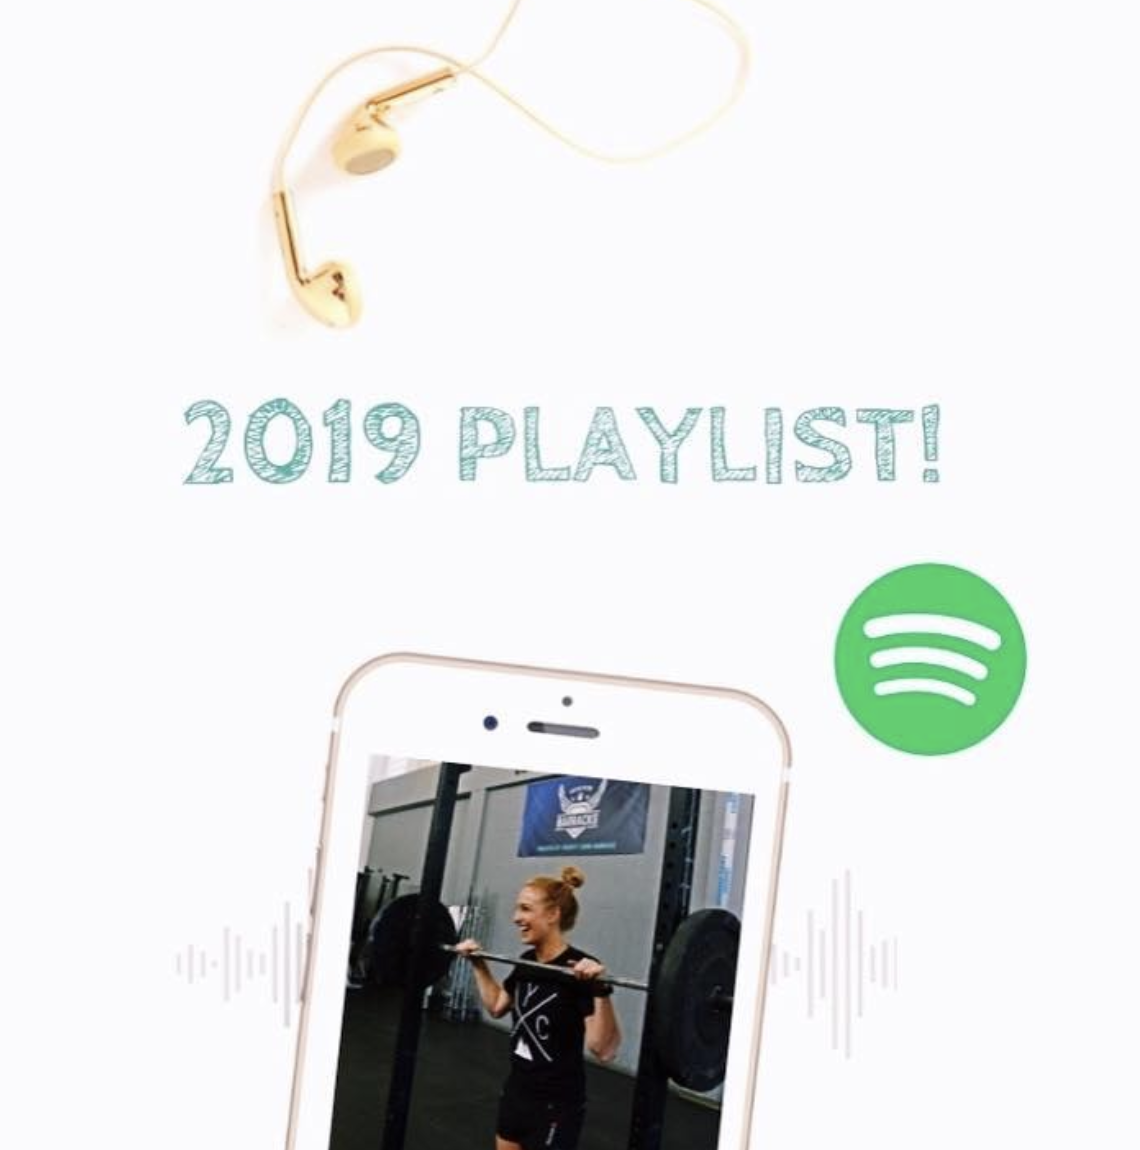 Think outside the box - make playlists and things your clients ACTUALLY want!